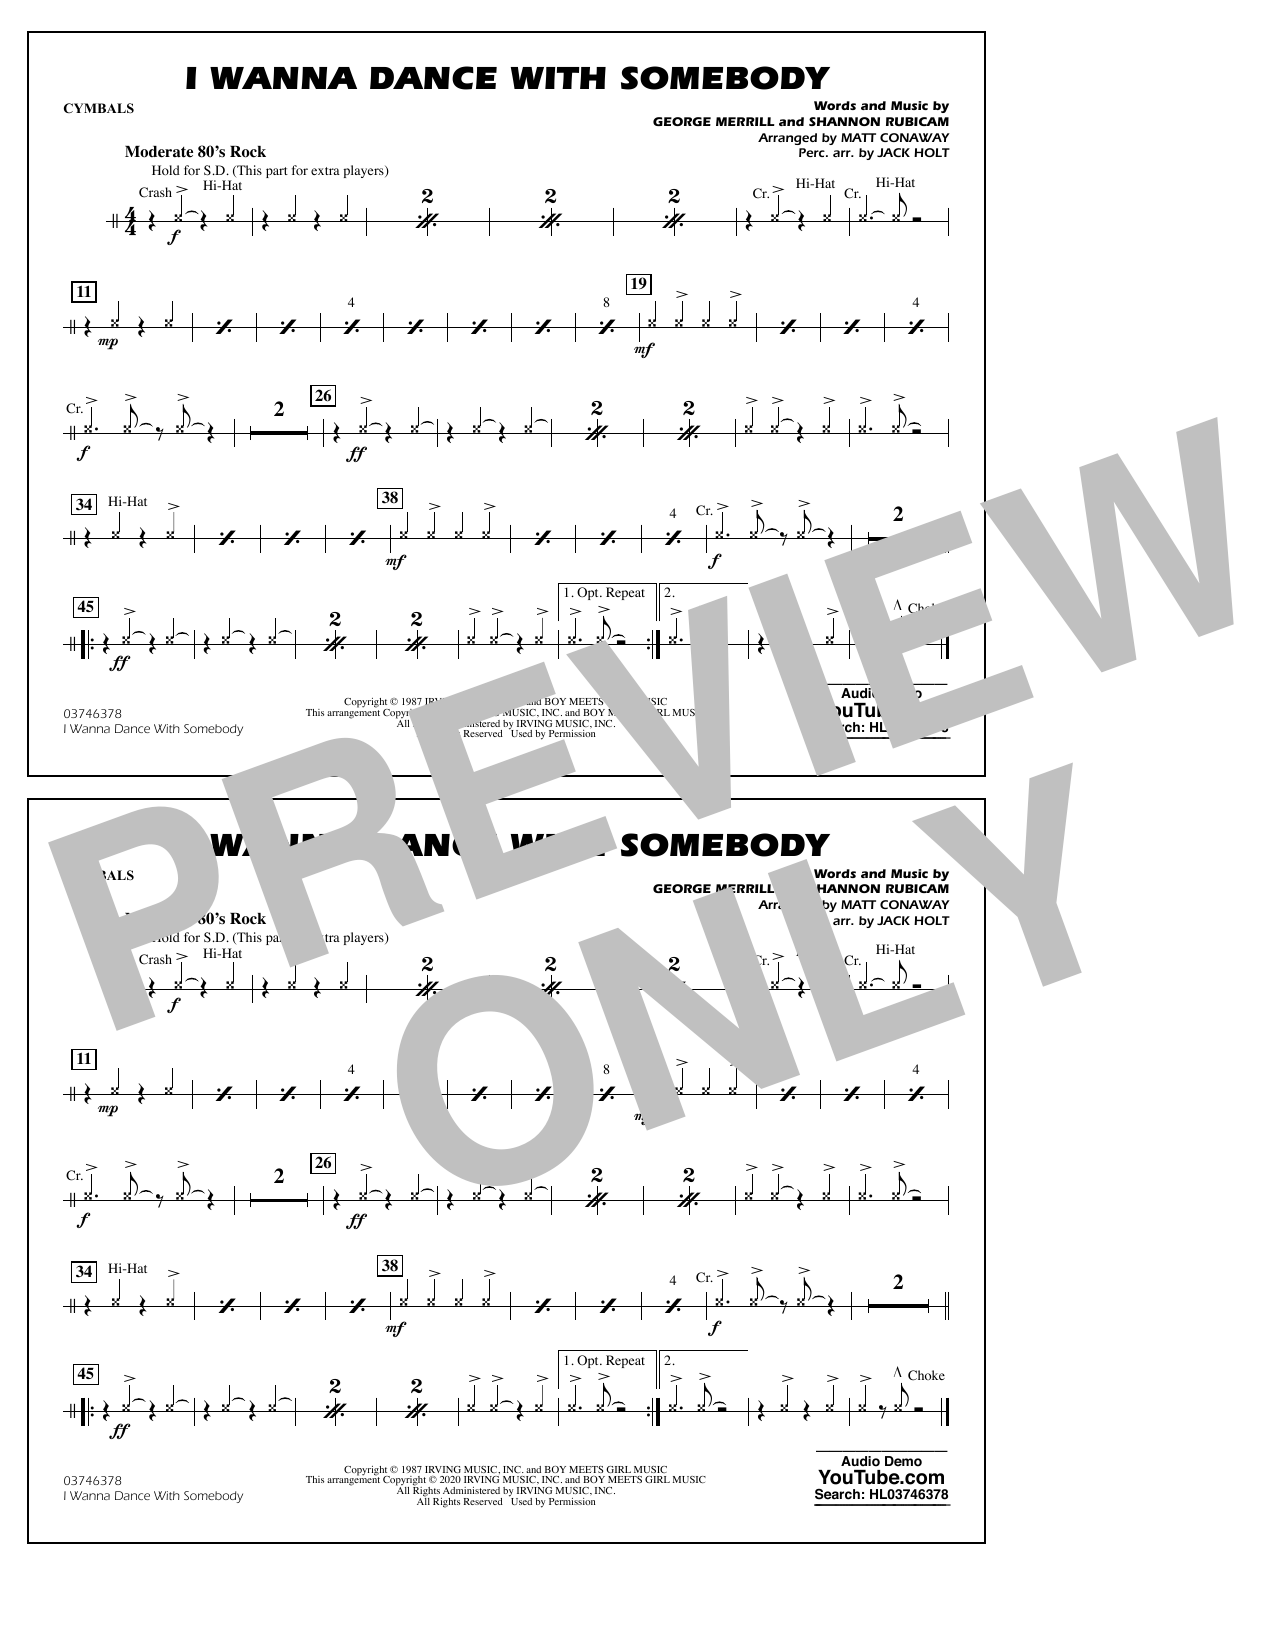 I Wanna Dance with Somebody (arr. Conaway and Holt) - Cymbals Sheet Music